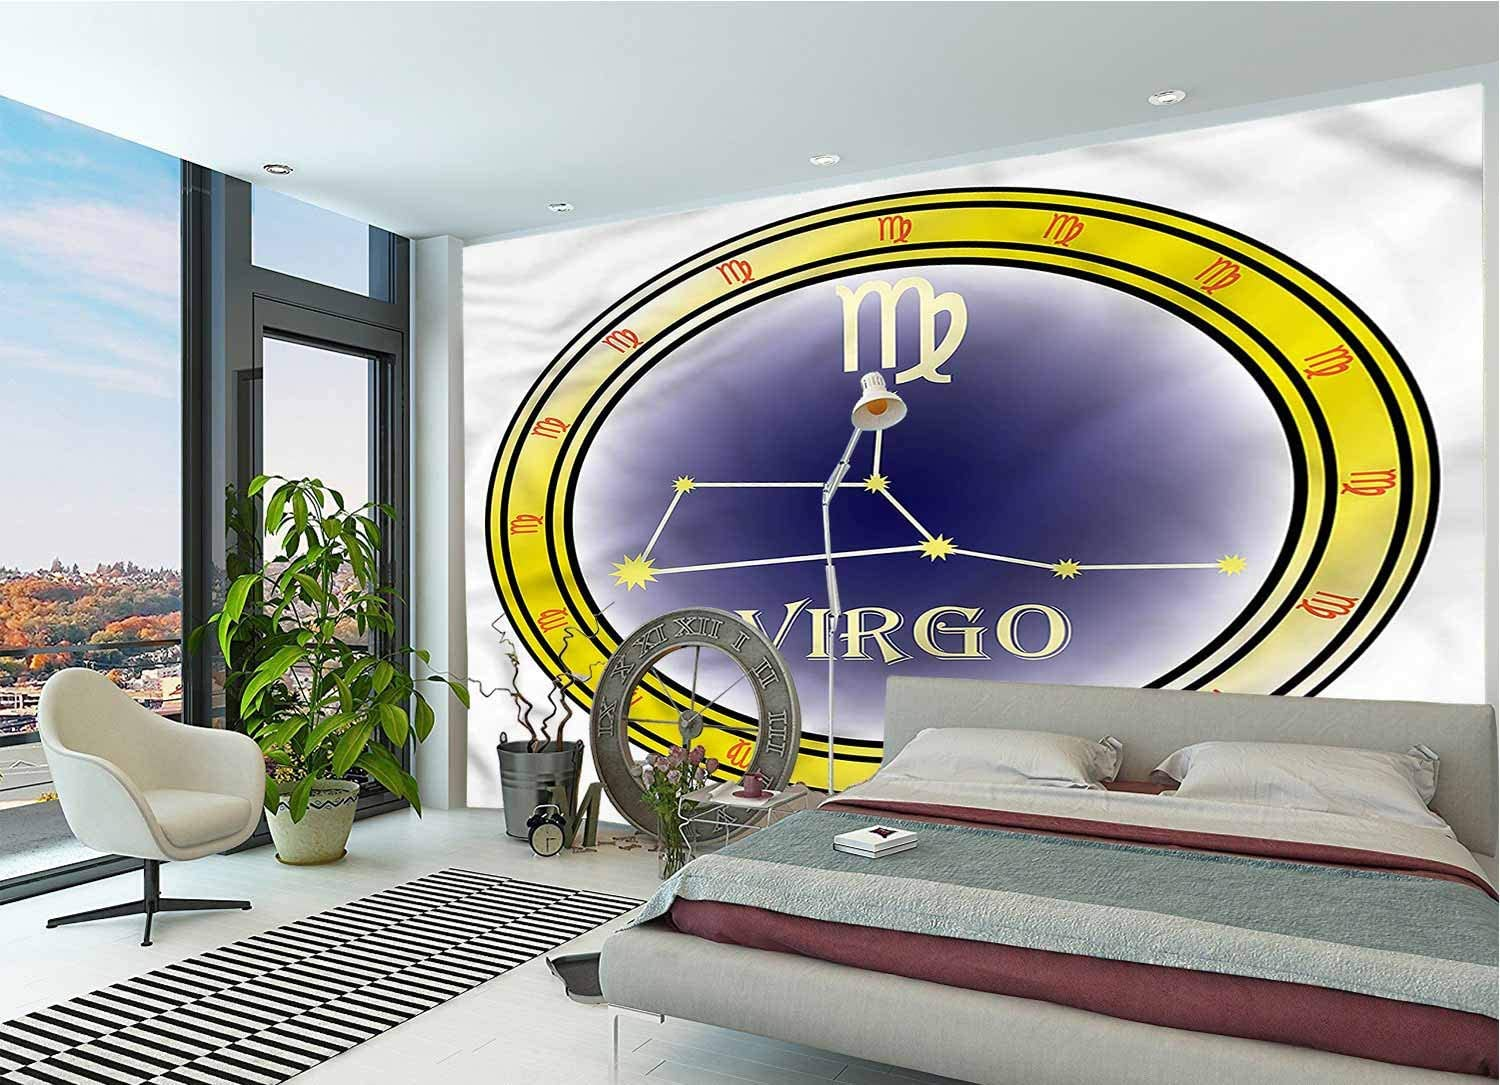 LCGGDB Zodiac Virgo Large Wall Mural,Constellation Sign Self-Adhesive Large Wallpaper for Office Kids Bedroom Nursery Family Decor-144x100 Inch